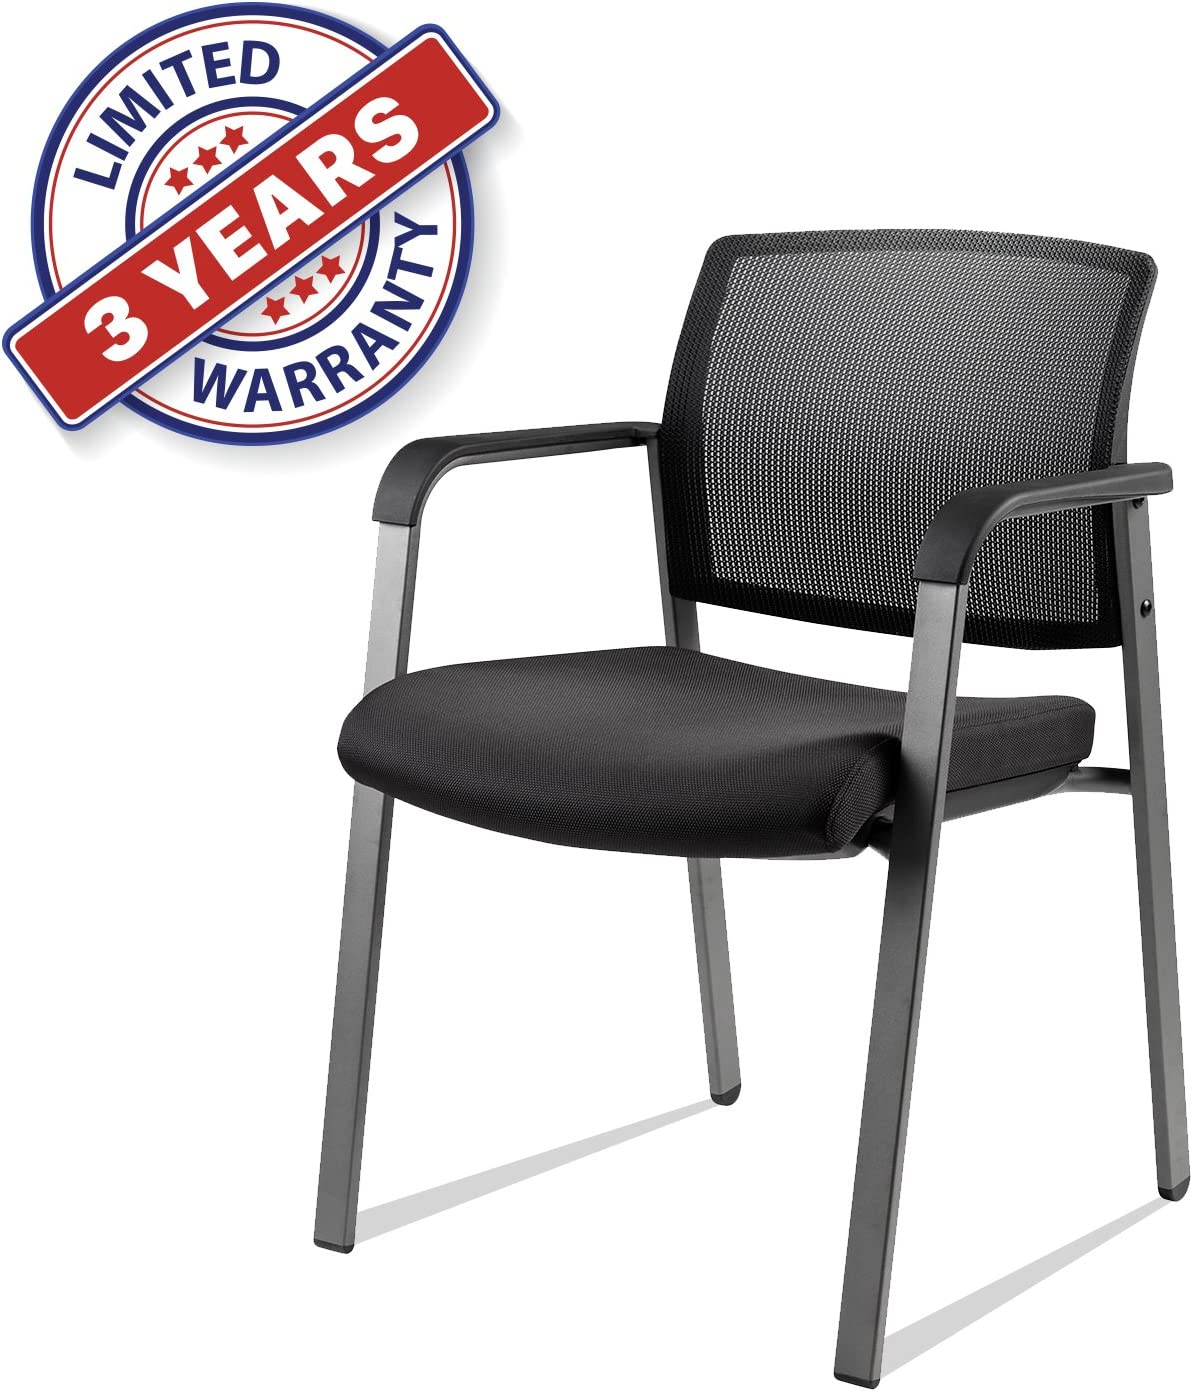 Upholstered Mesh Stacking Chairs ...  sc 1 st  Amazon.com & Stacking Chairs   Amazon.com   Office Furniture u0026 Lighting - Chairs ...